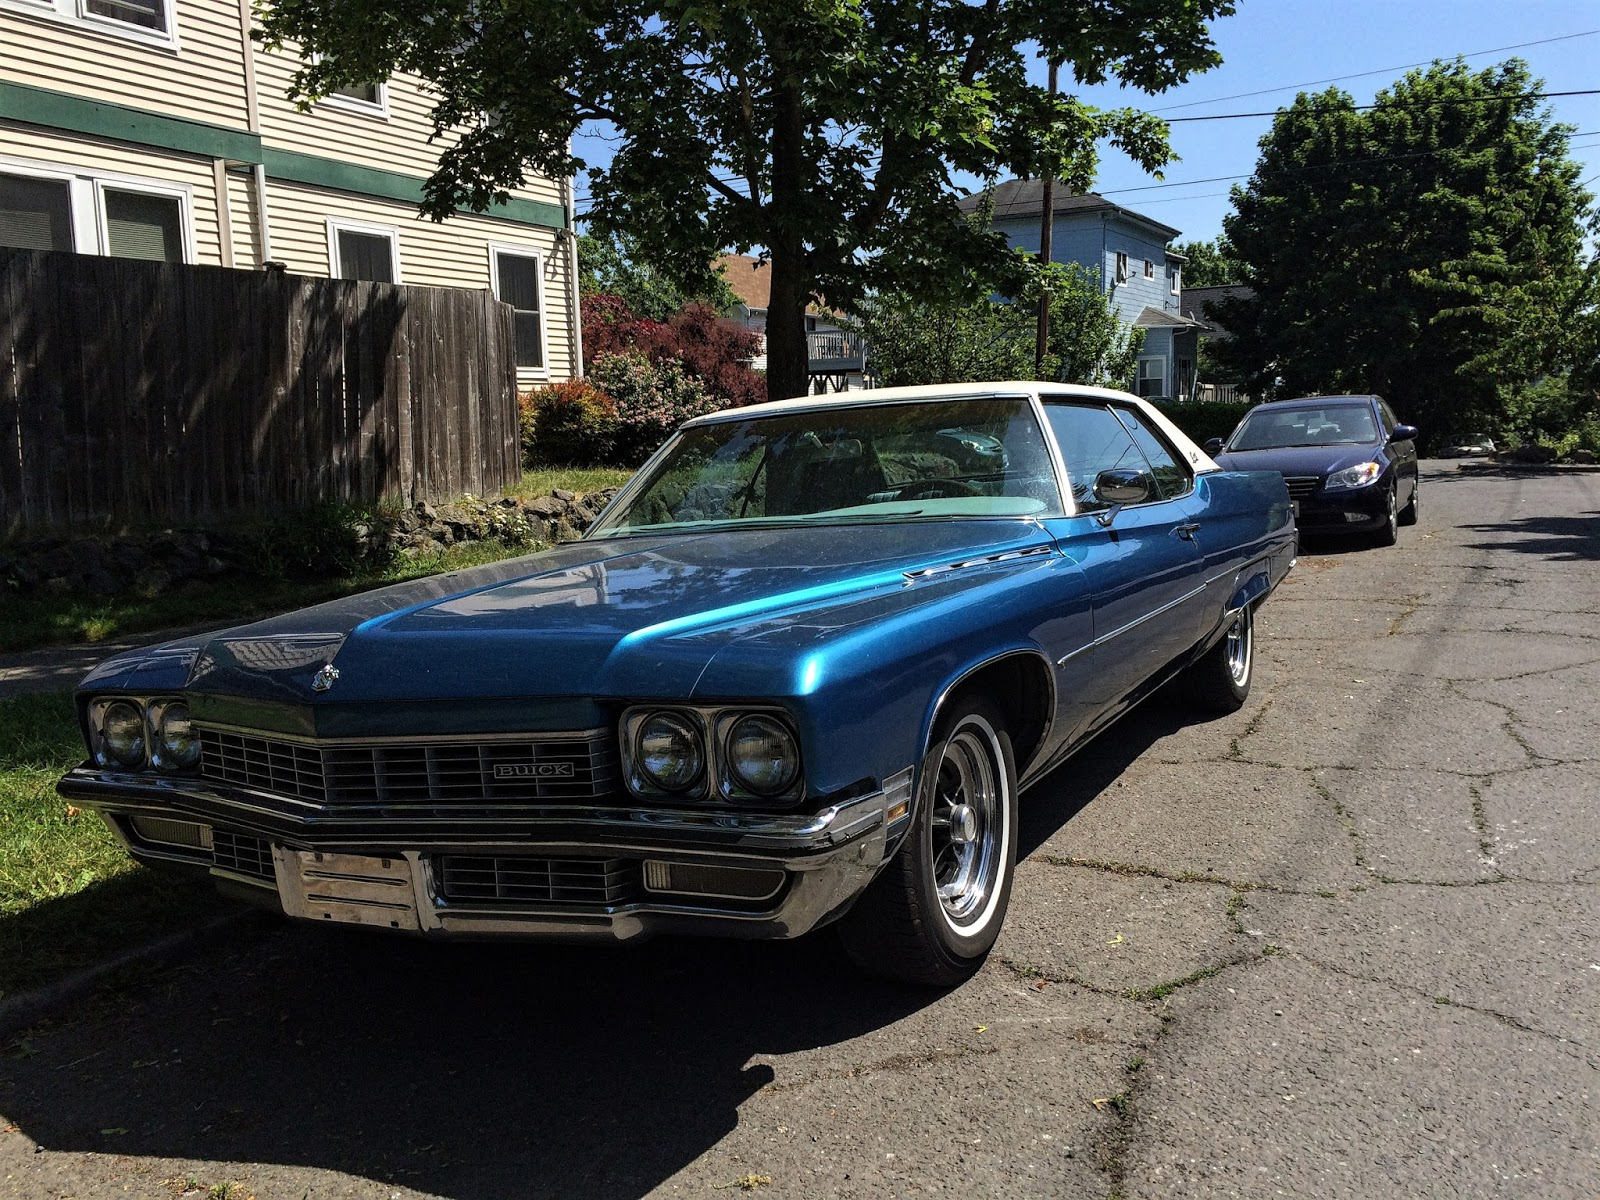 1972 Buick Electra Limited Coupe on 1971 buick electra